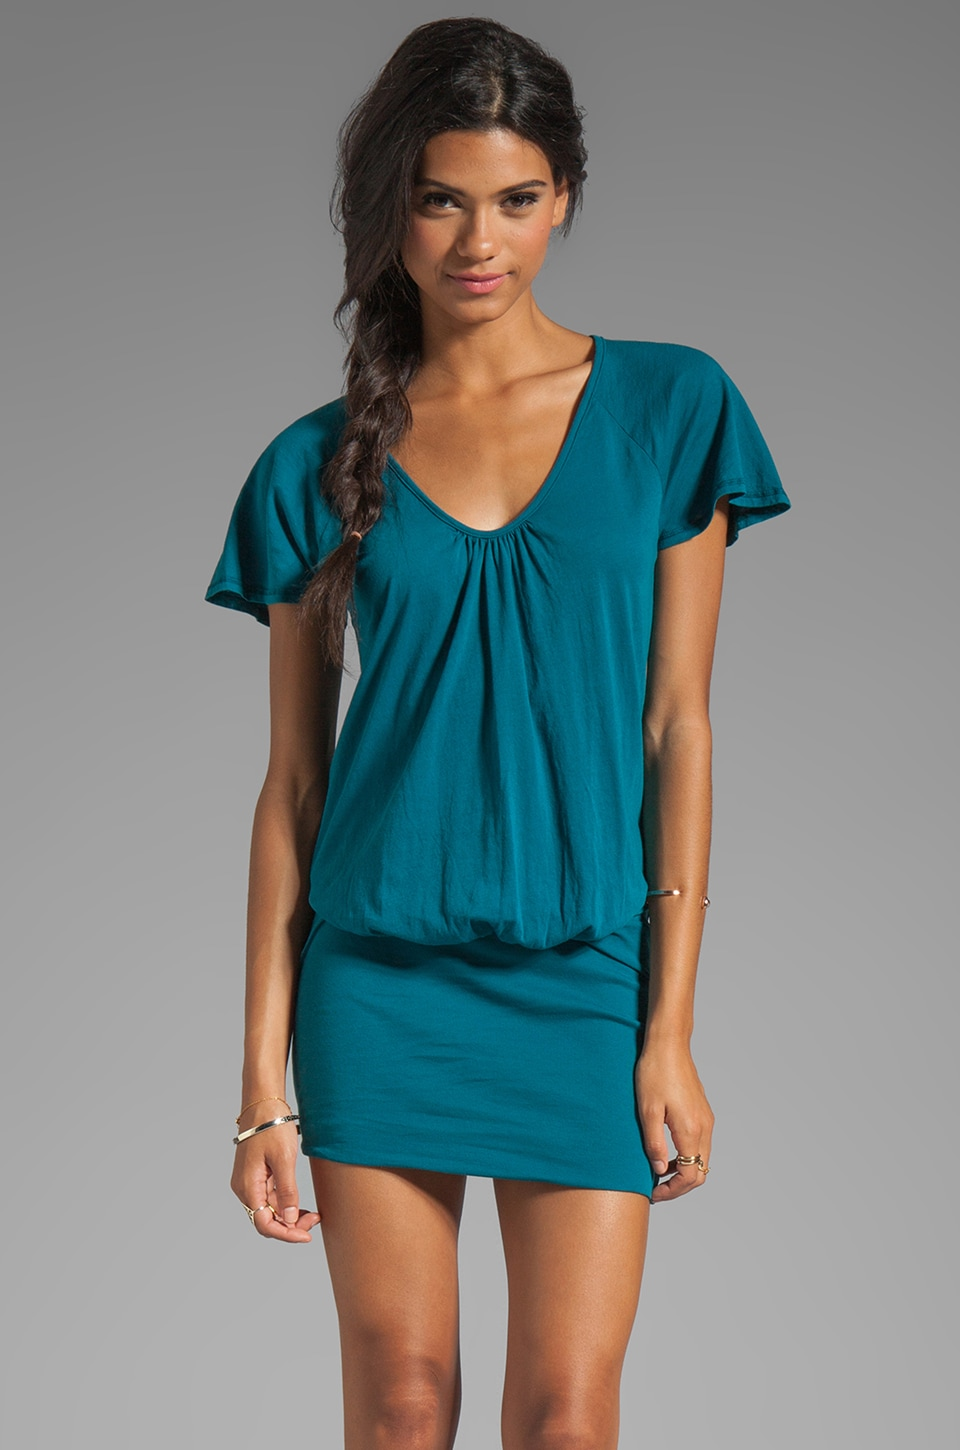 Bobi Light Weight Jersey Scoop Neck Dress in Catalina